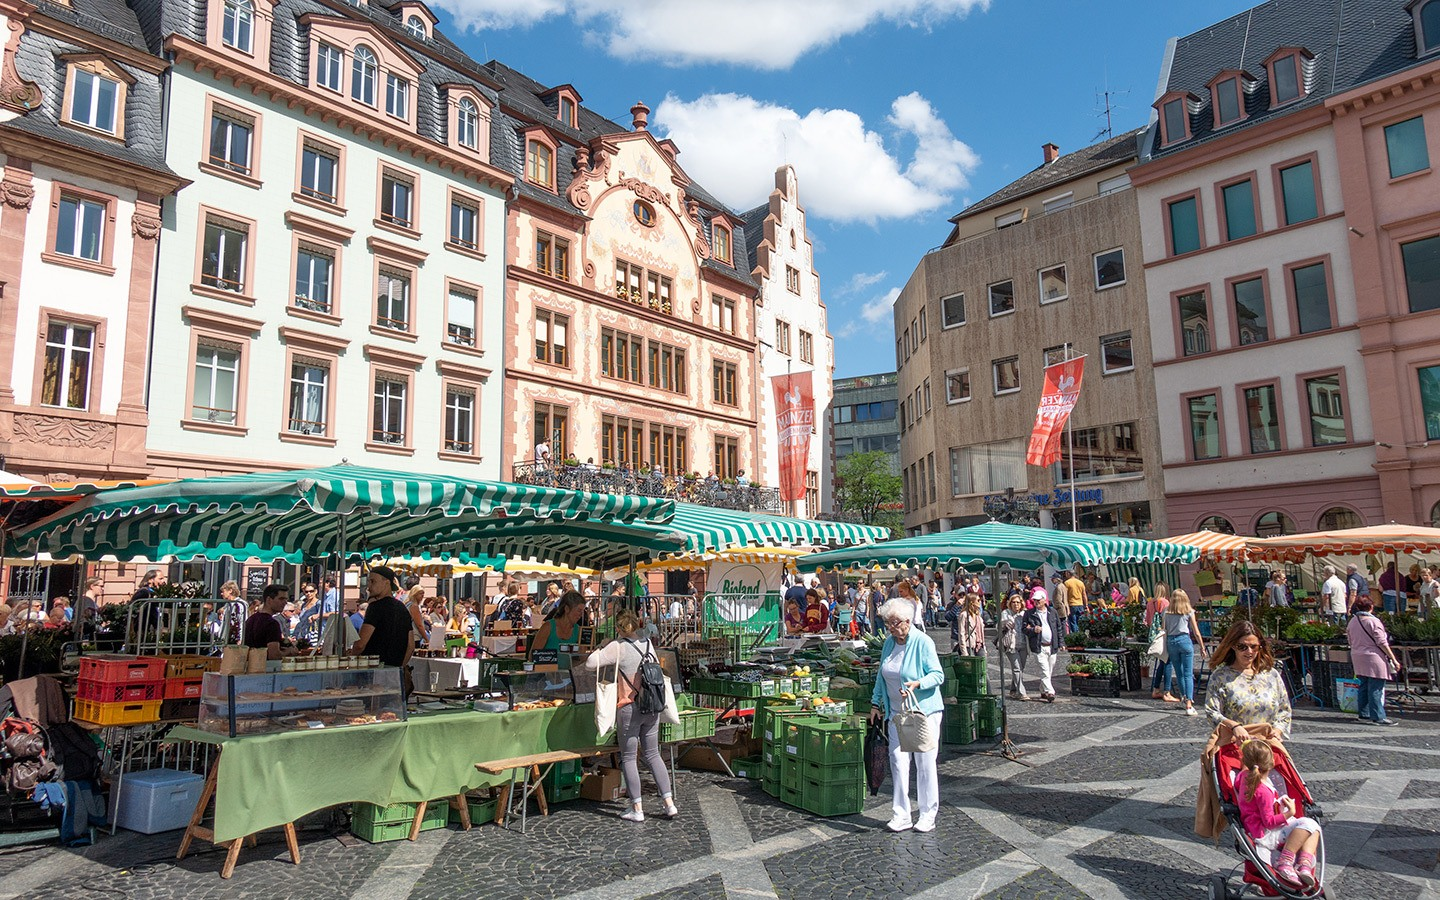 Mainz Farmers' Market, Germany